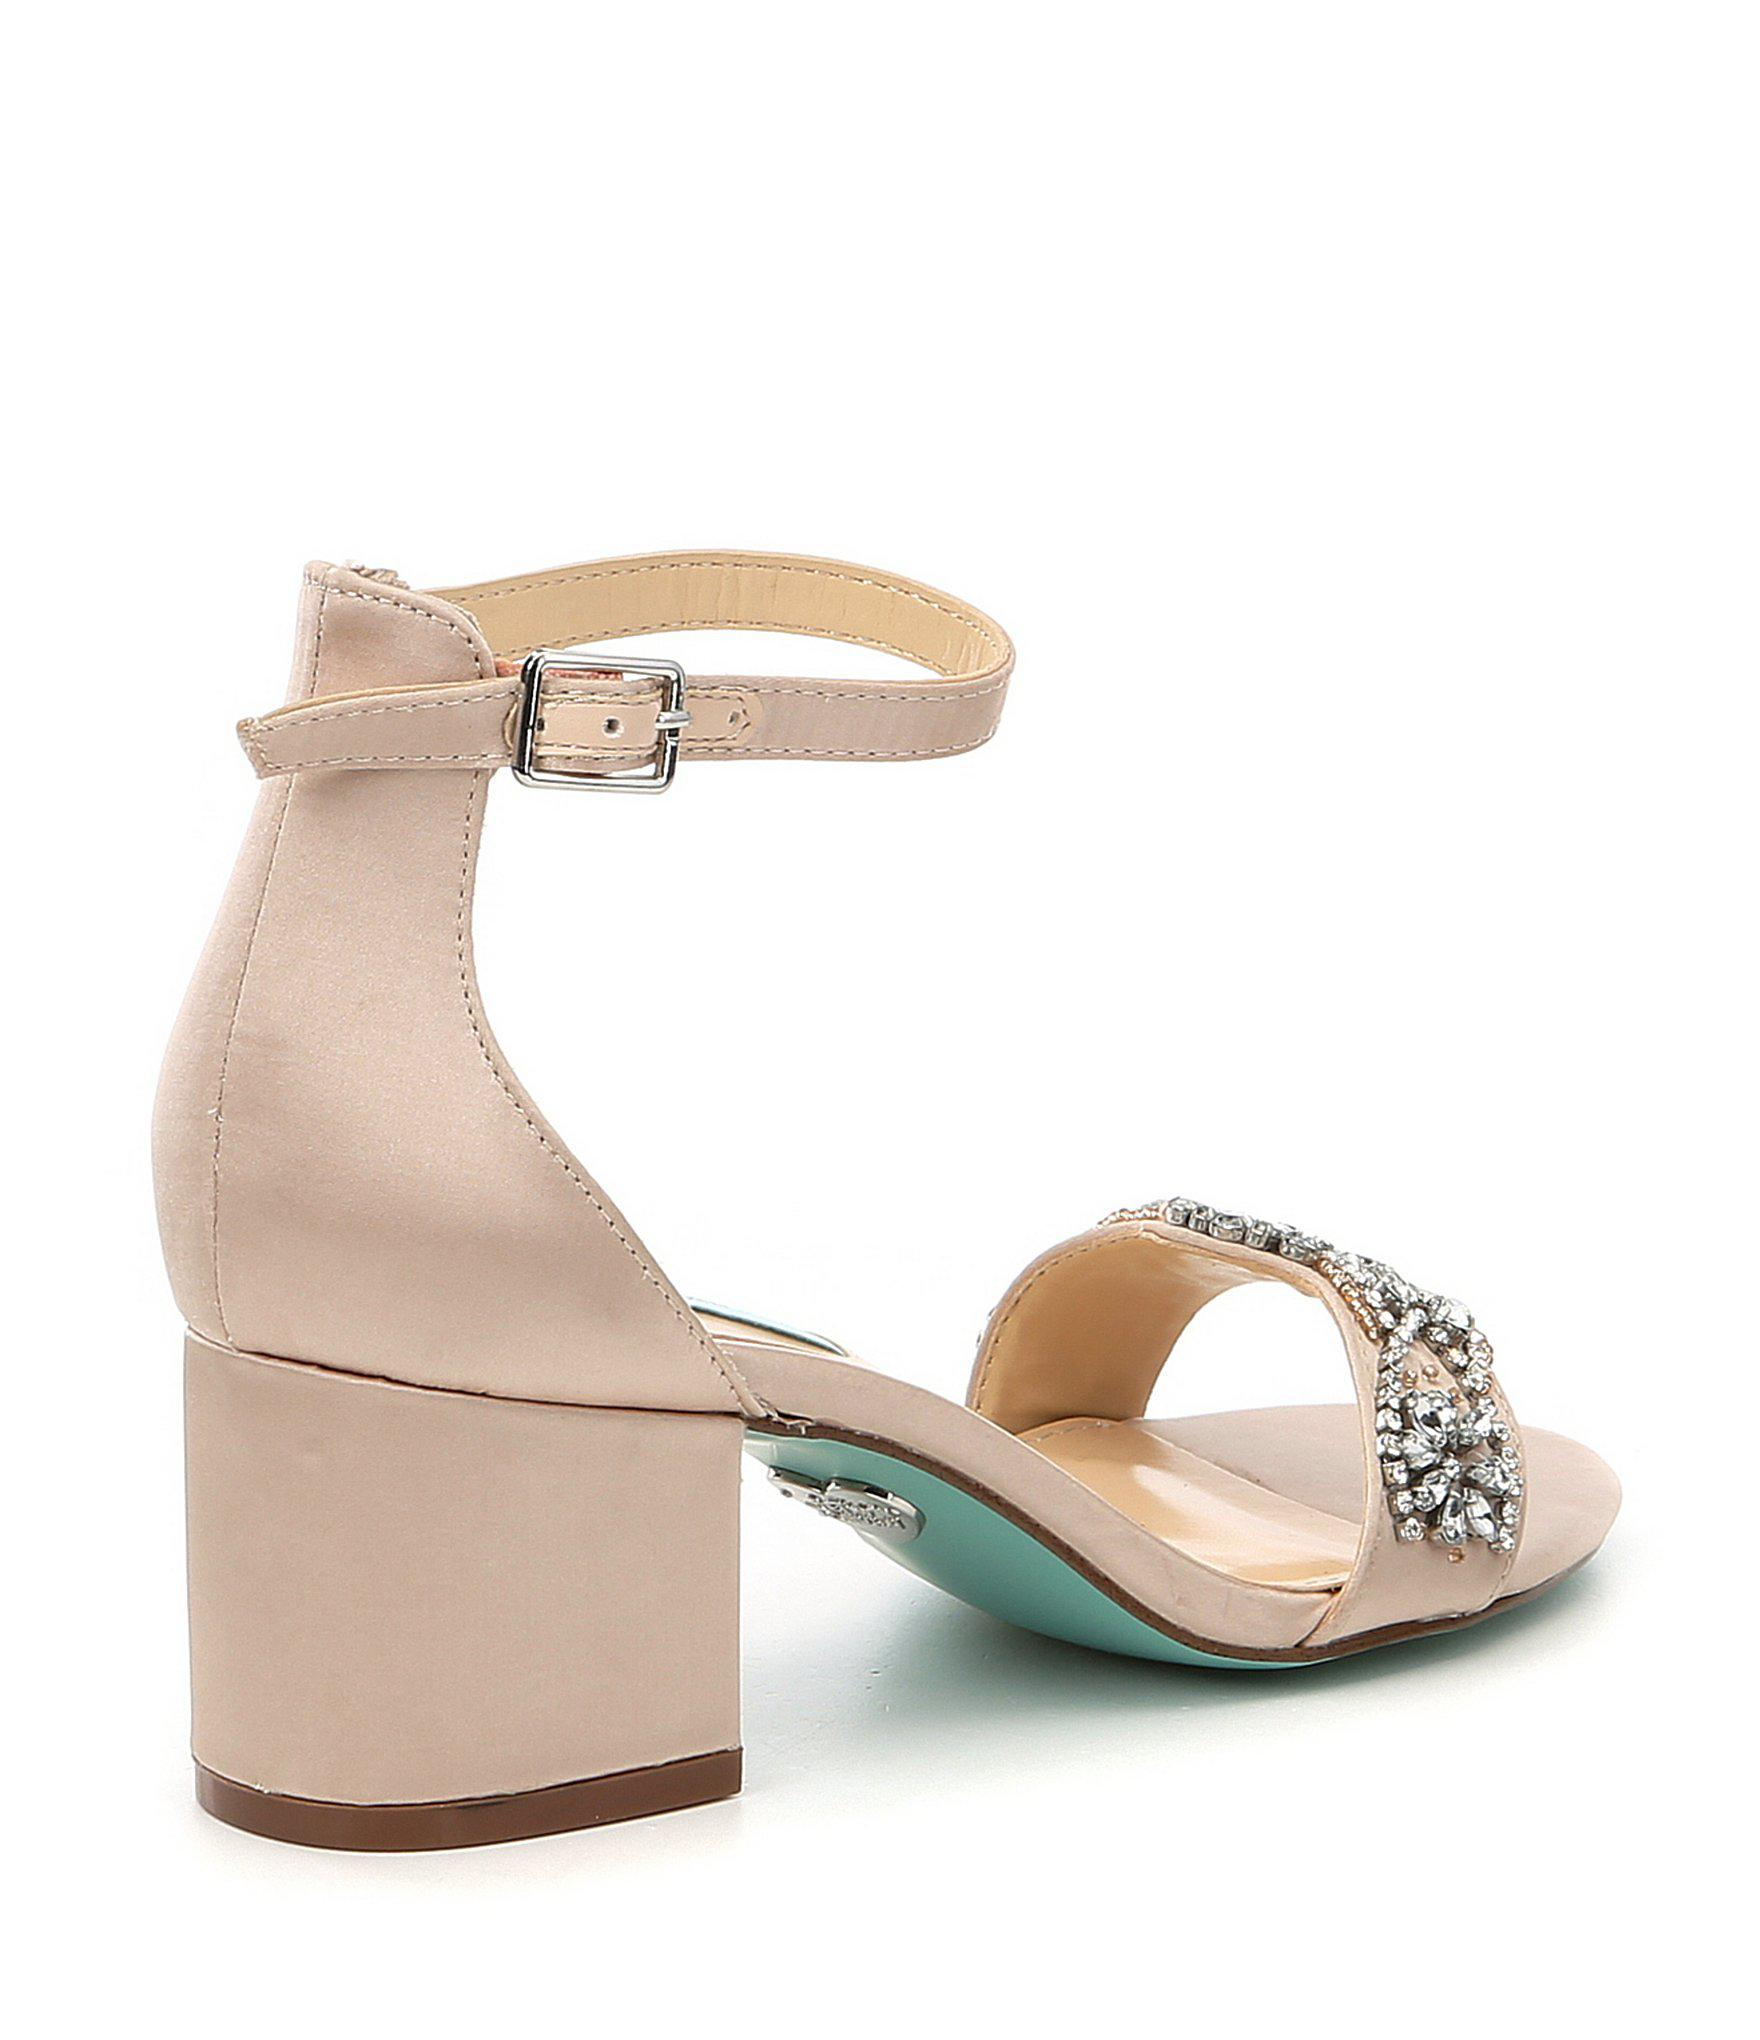 acc04a366710d Betsey Johnson - Multicolor Blue By Mel Bejeweled Satin Block Heel Dress  Sandals - Lyst. View fullscreen